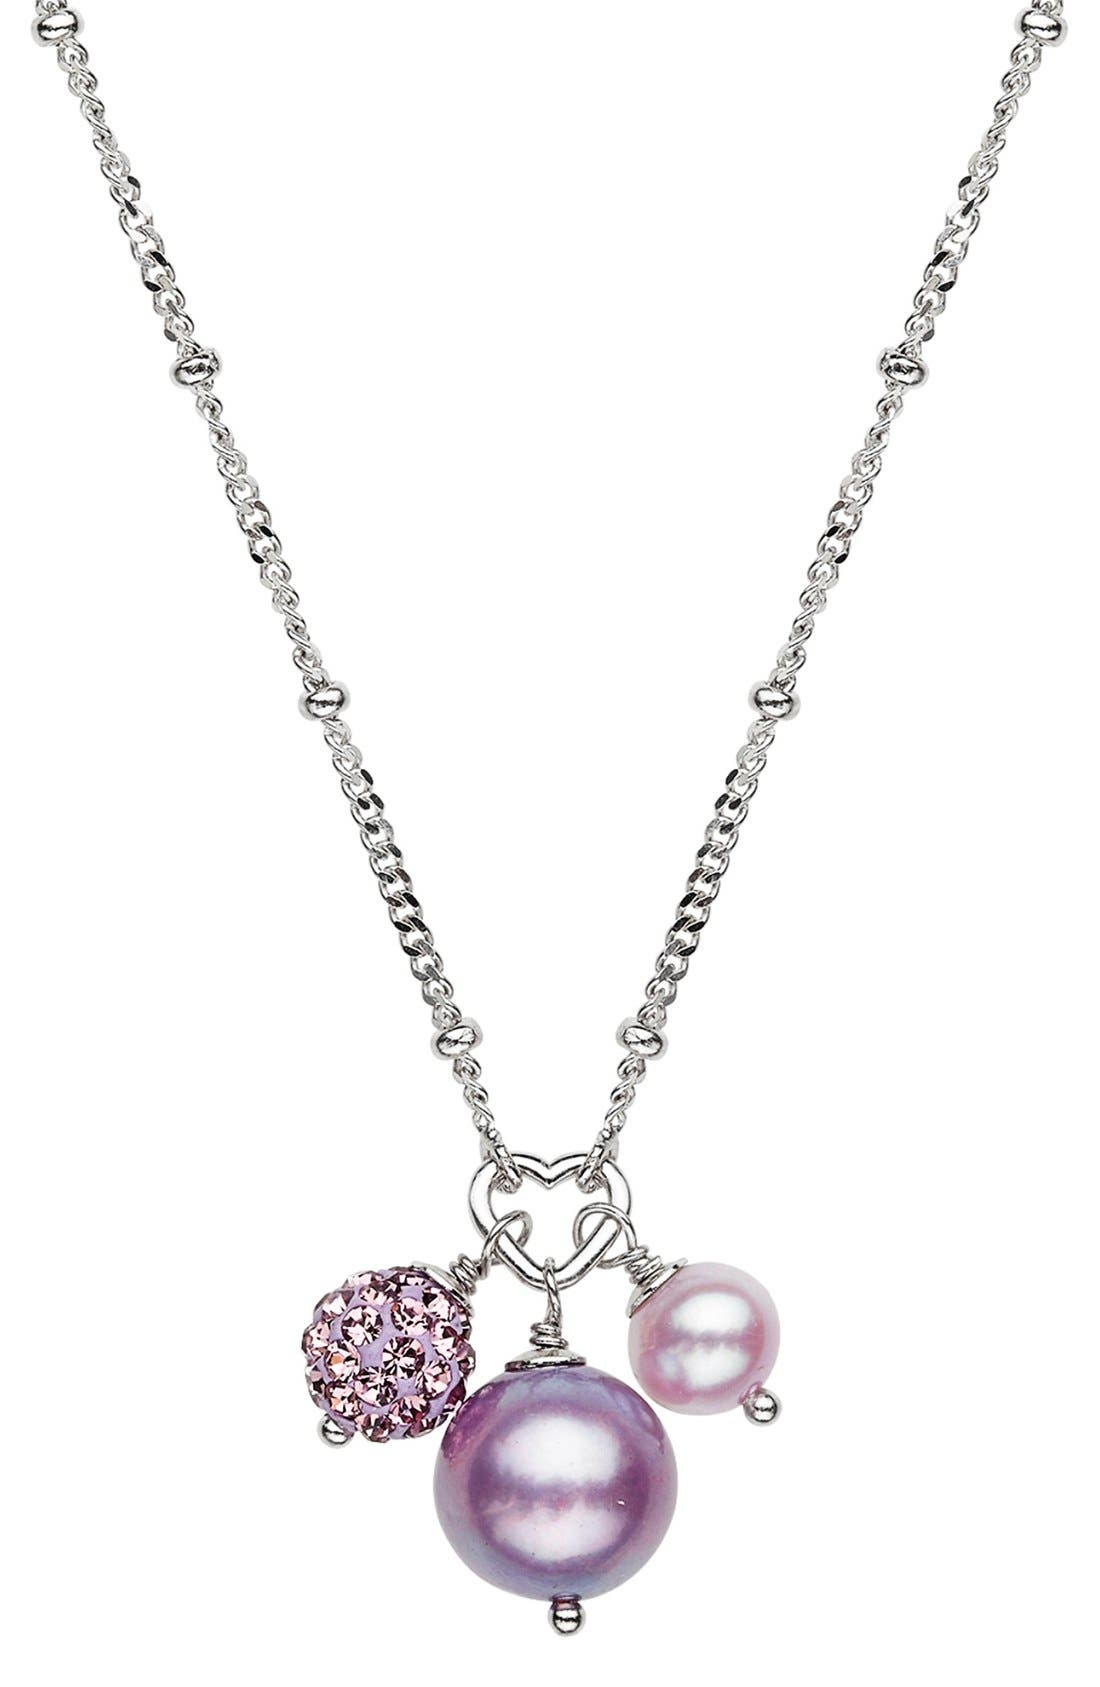 Freshwater Pearl & Crystal Necklace,                         Main,                         color, Lilac